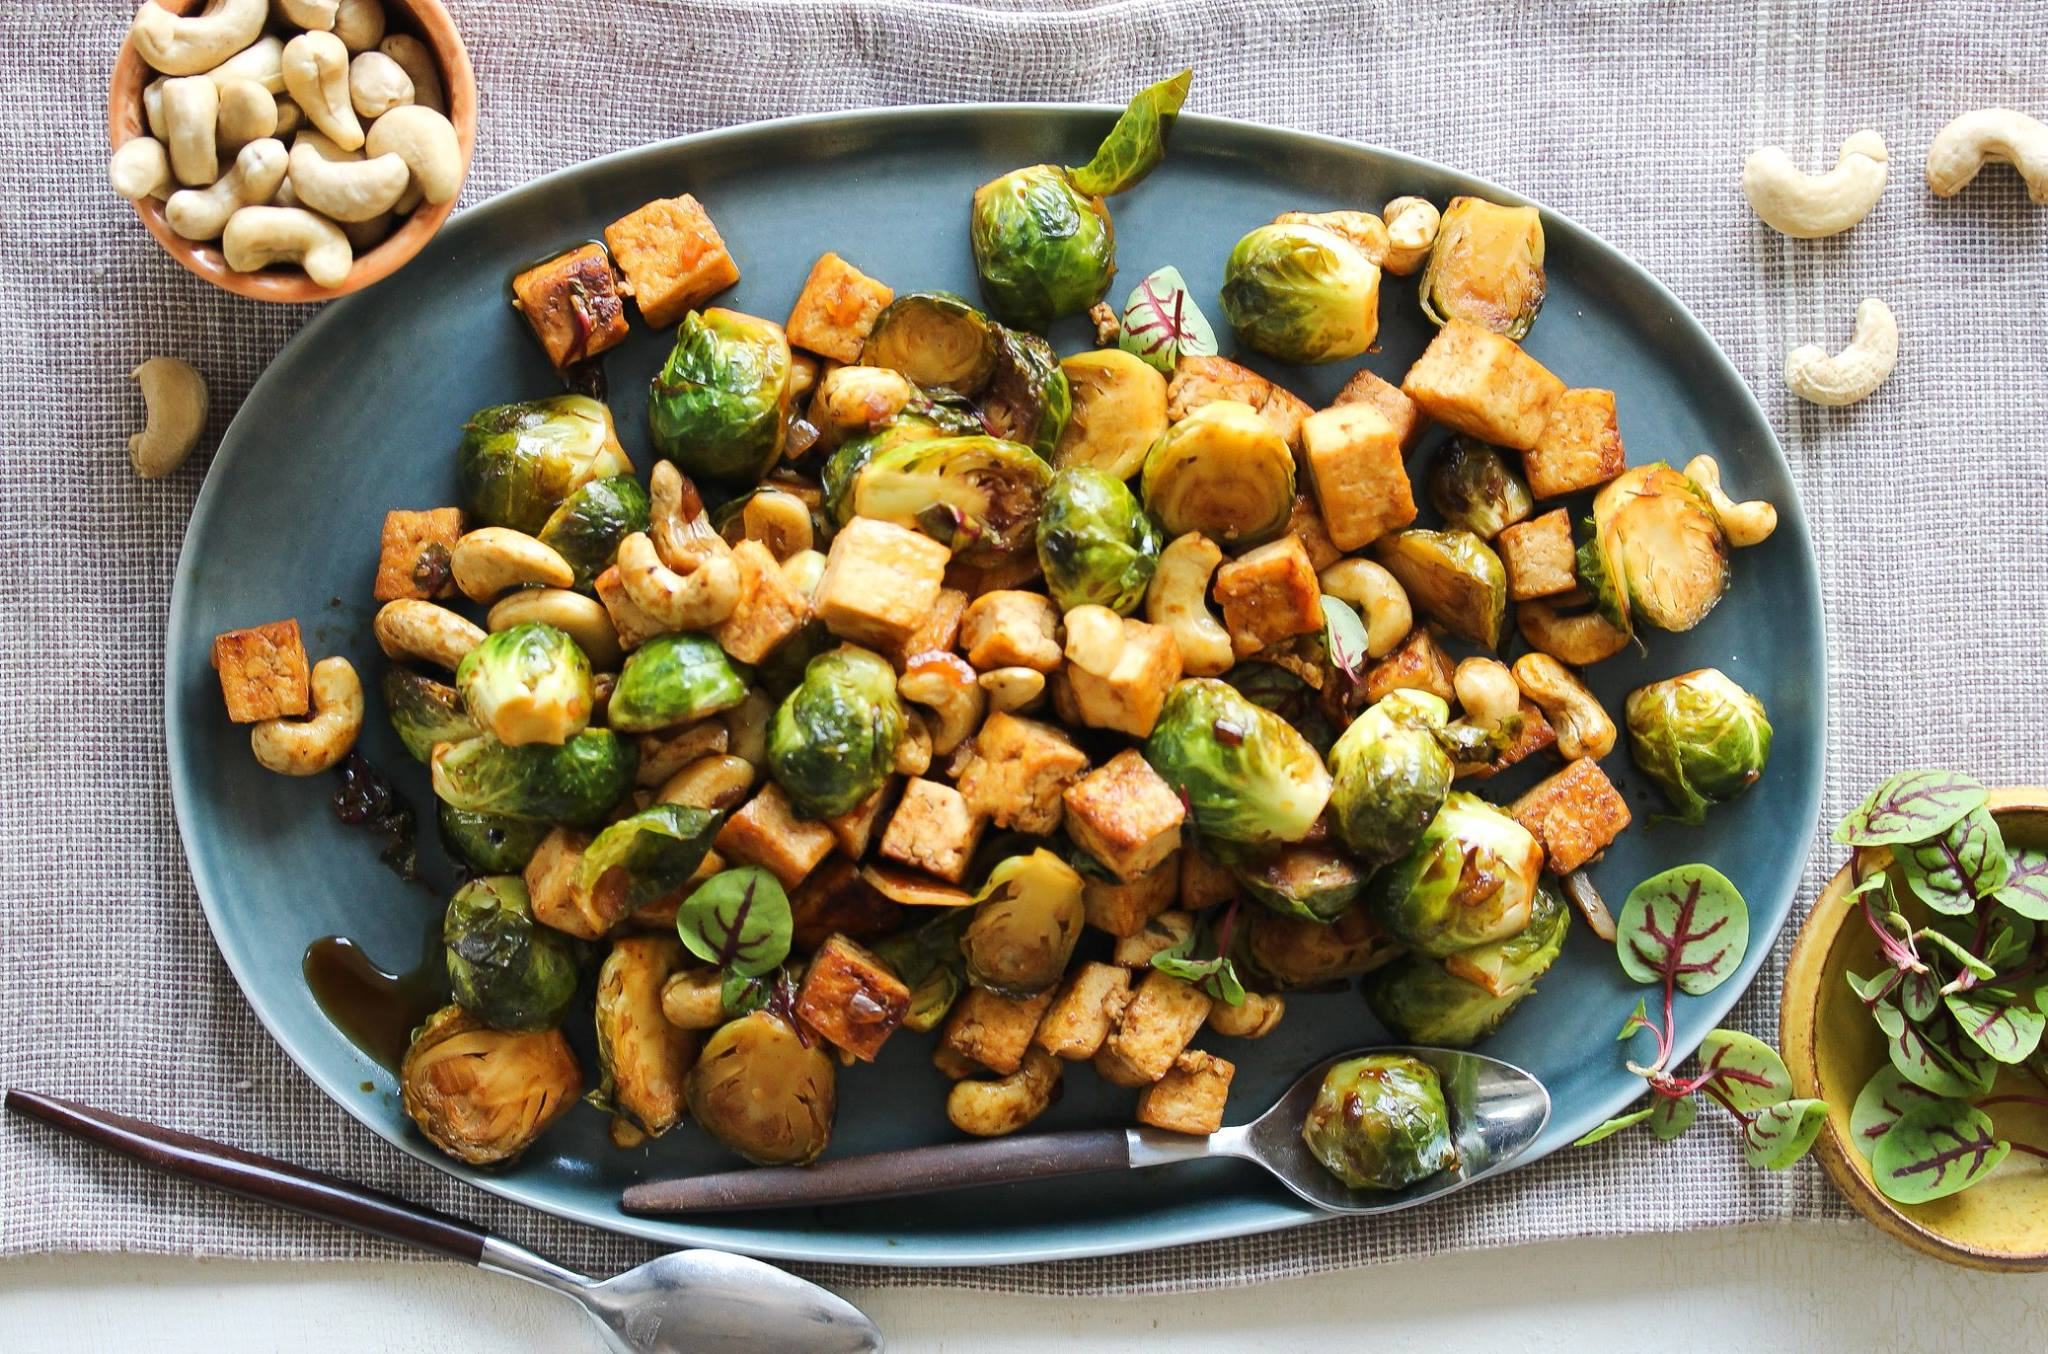 Sweet and Sour Tofu and Brussels Sprouts Stir-Fry